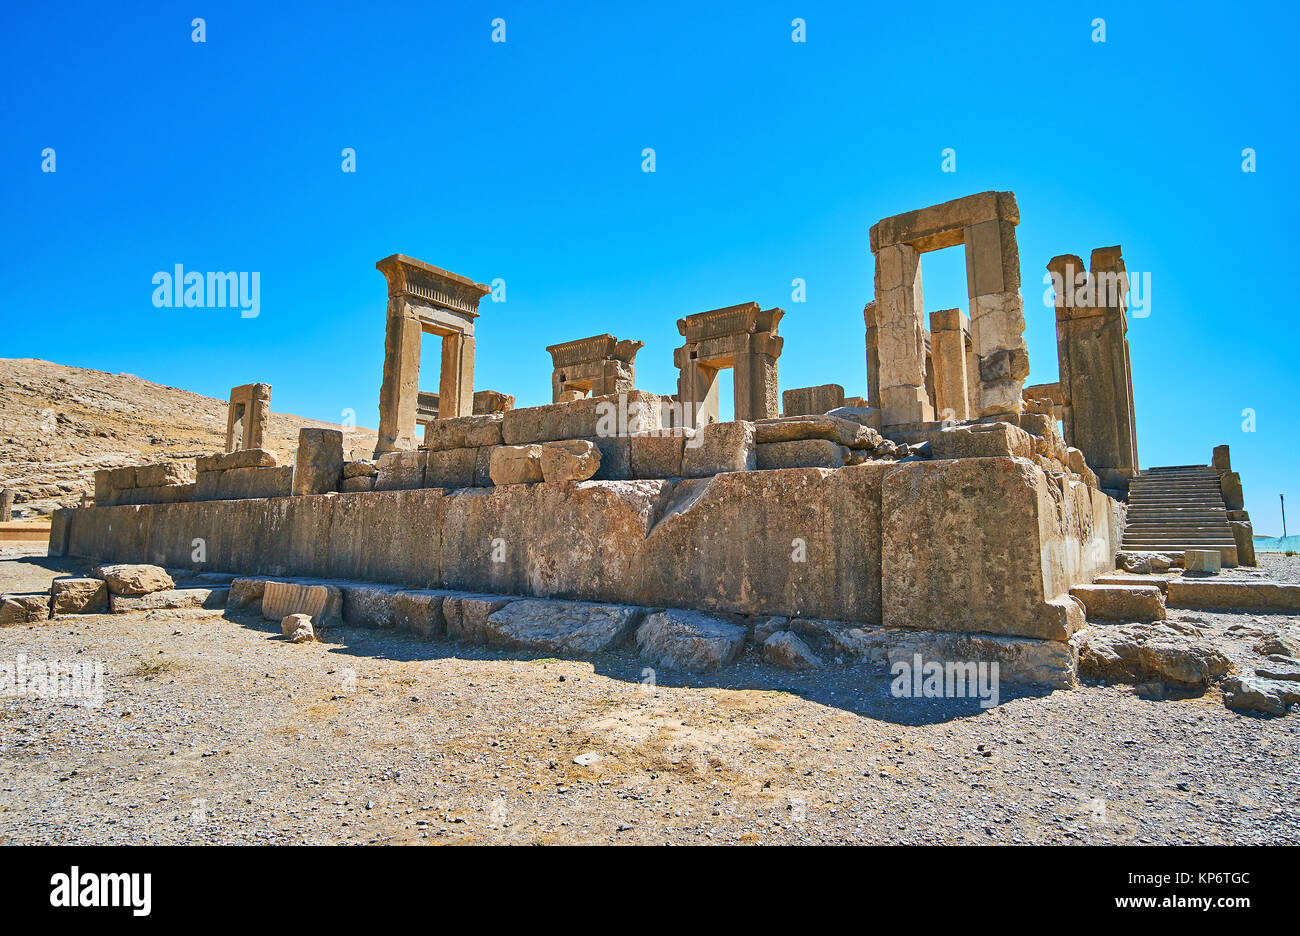 The site of the winter palace of Persepolis, named Tachara, Iran. - Stock Image